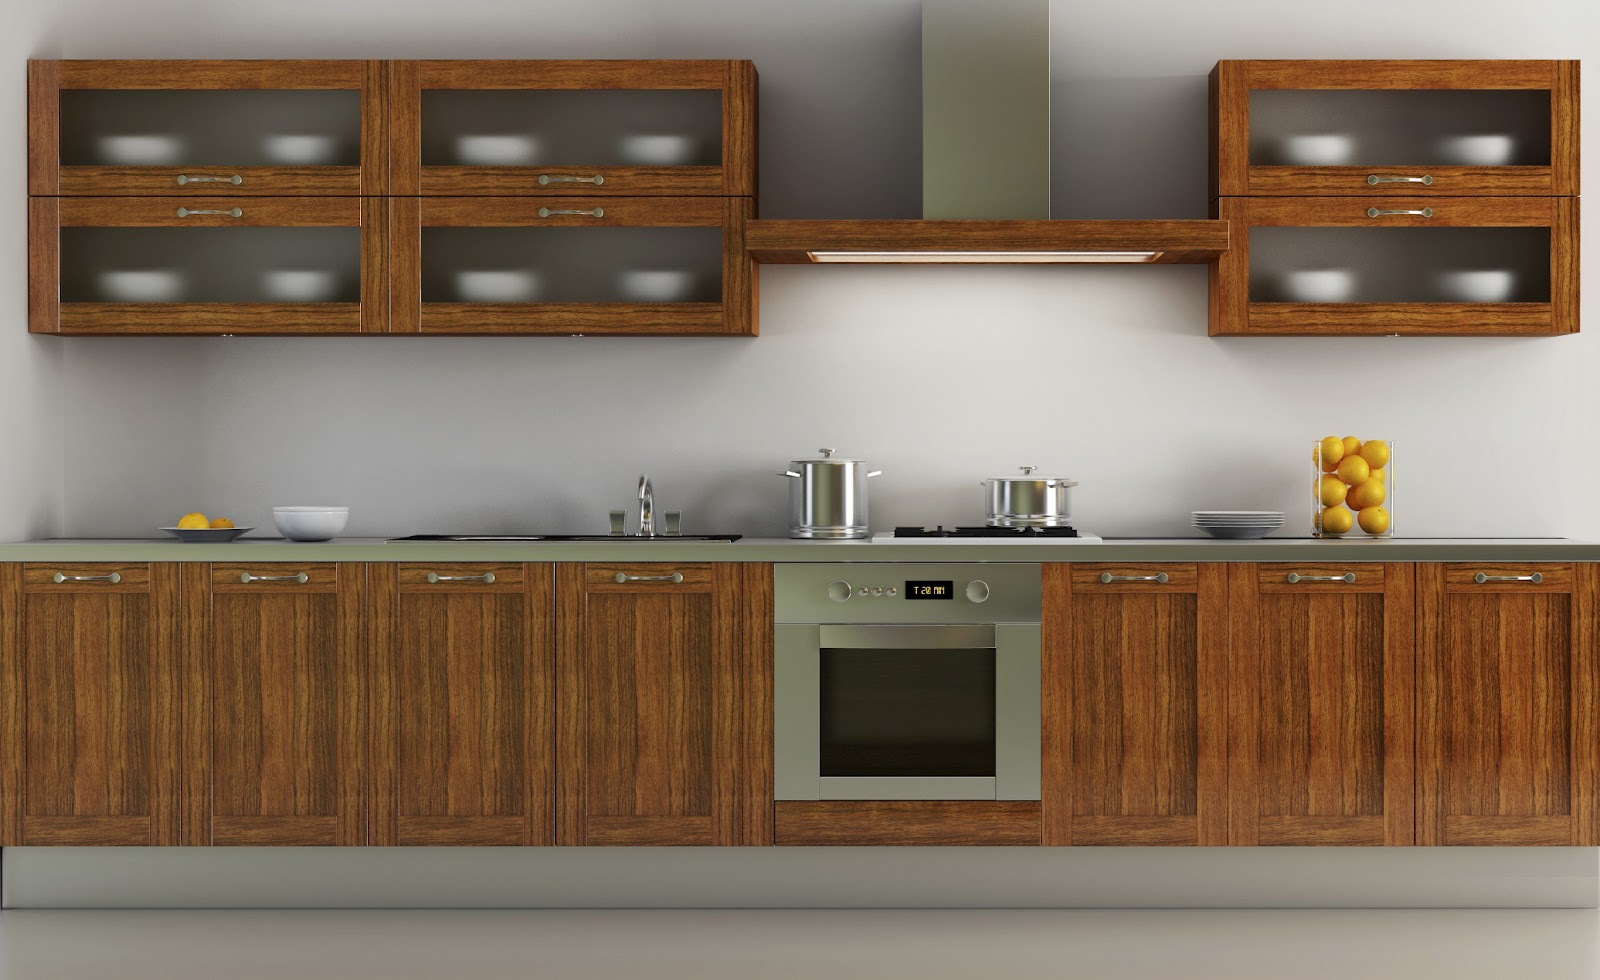 modern wood furniture designs ideas an interior design kitchen furniture designs for small kitchen in modern